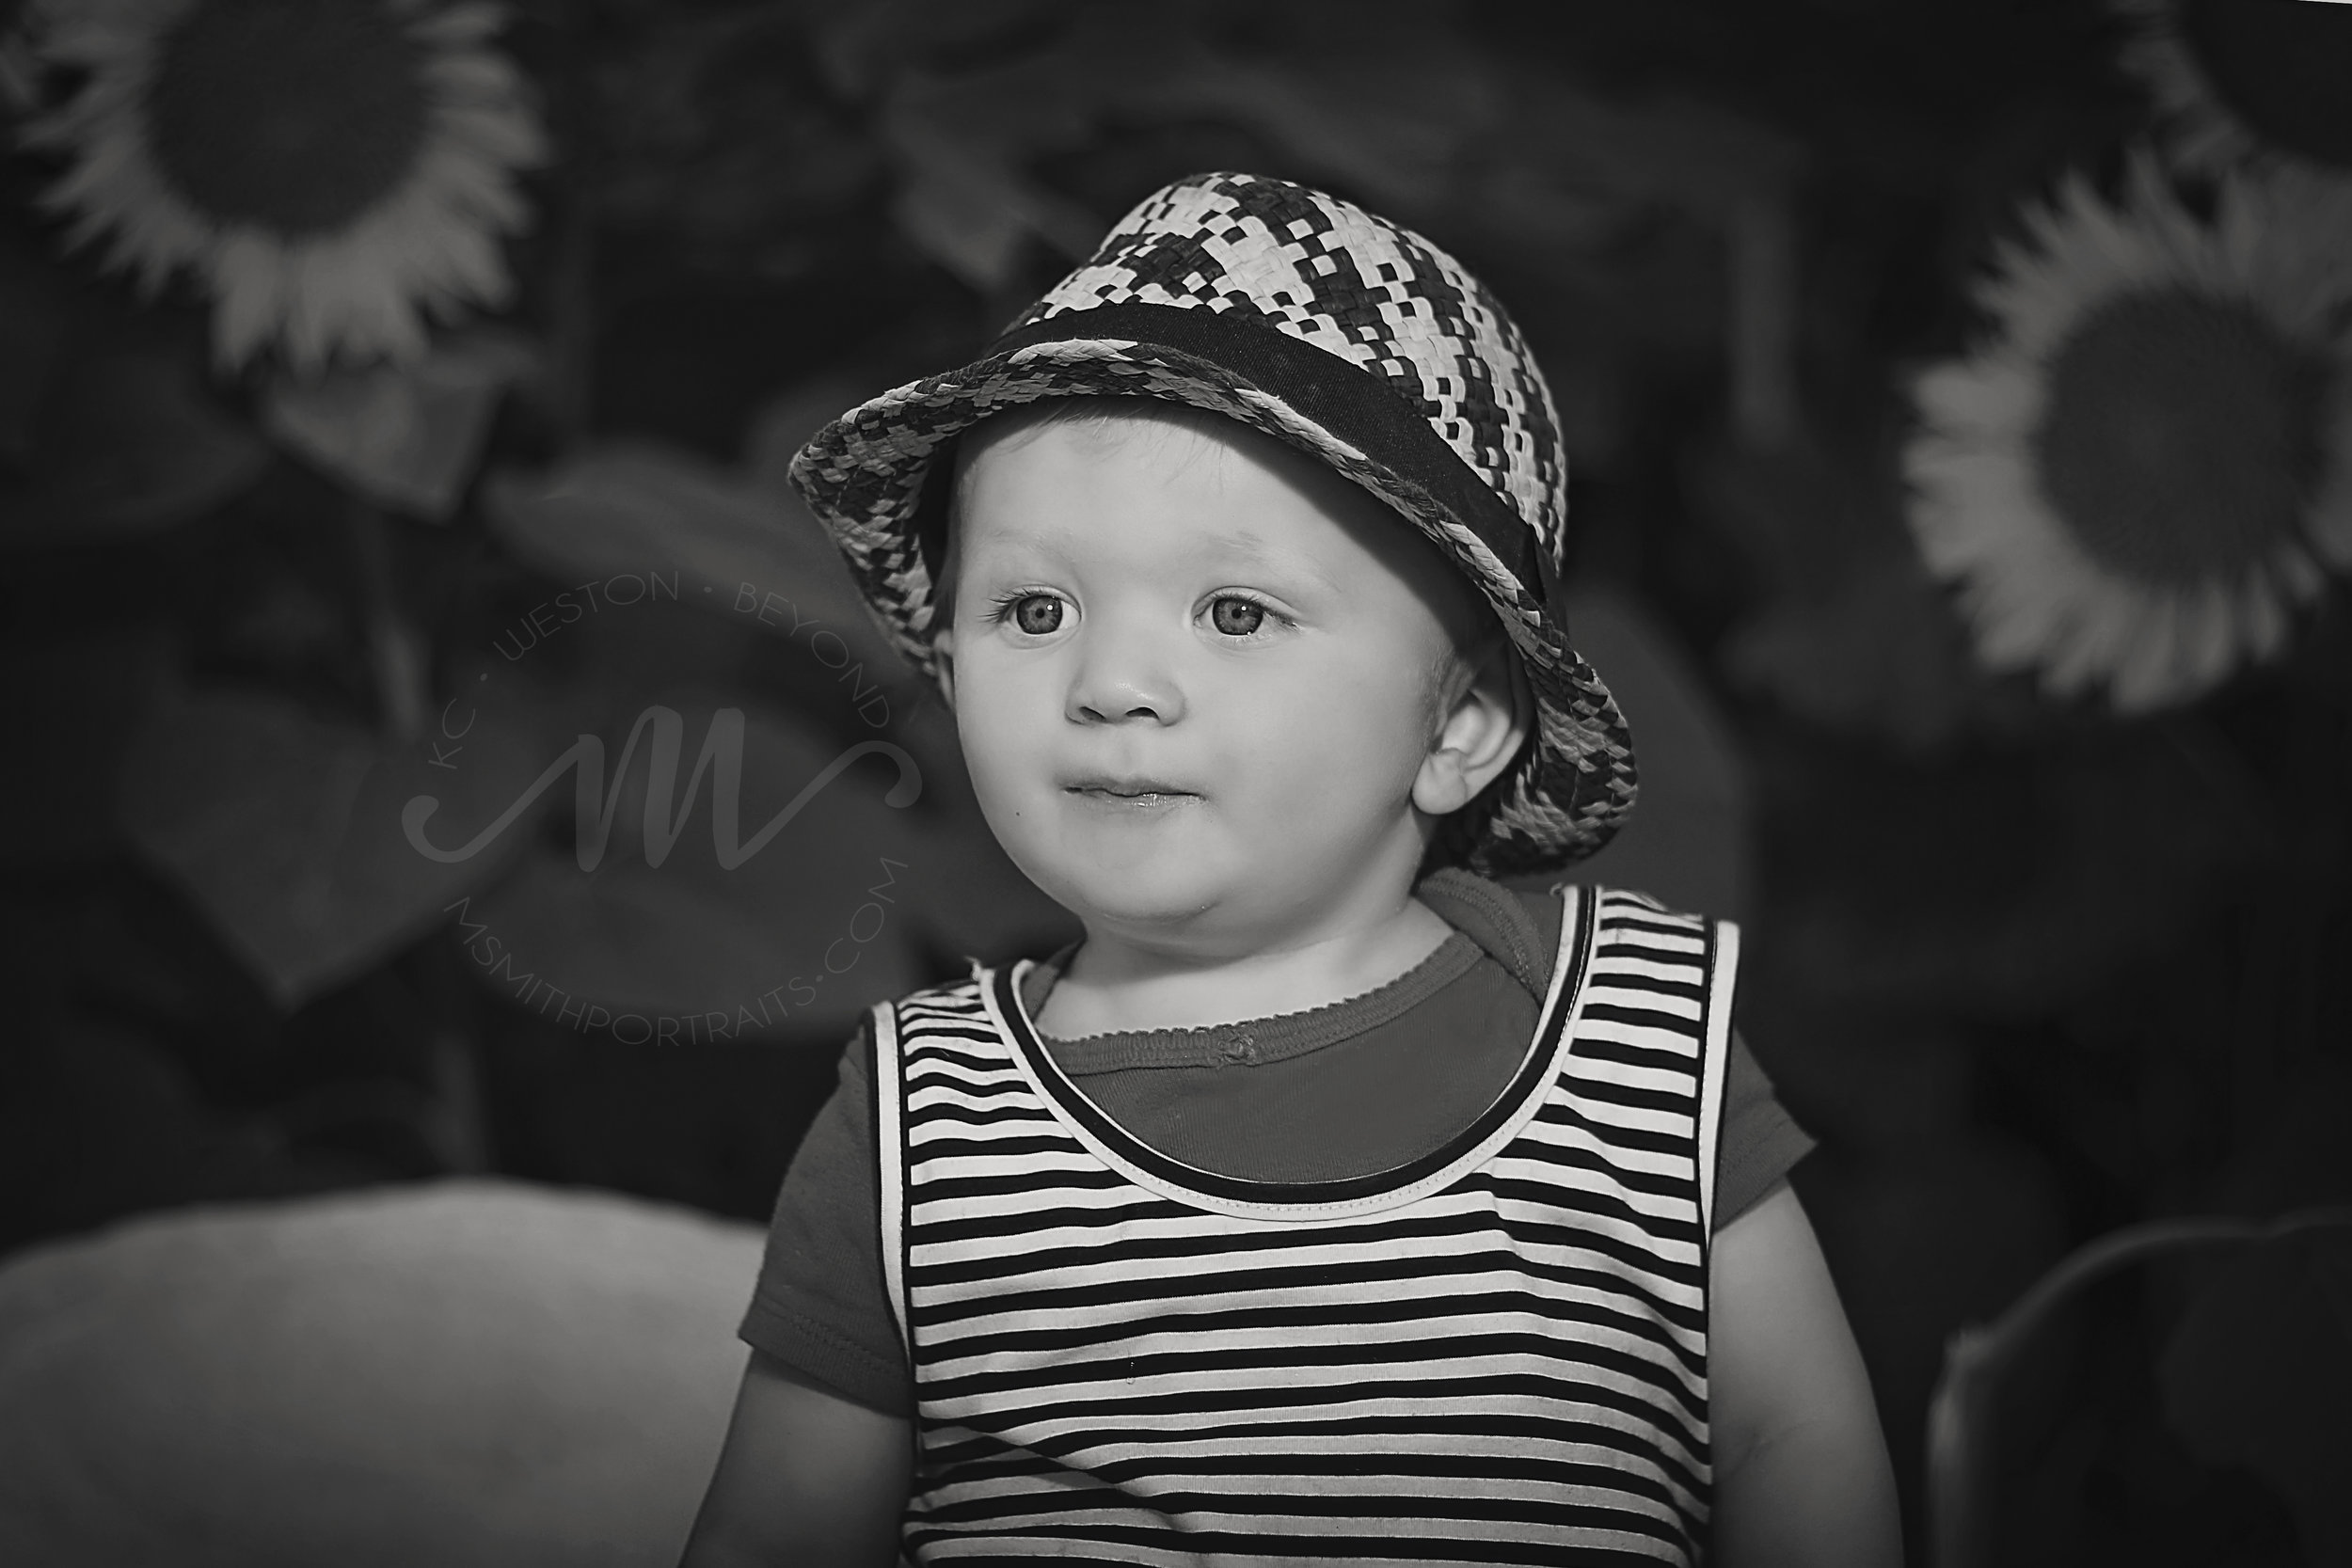 Black and White Photo of Toddler Boy